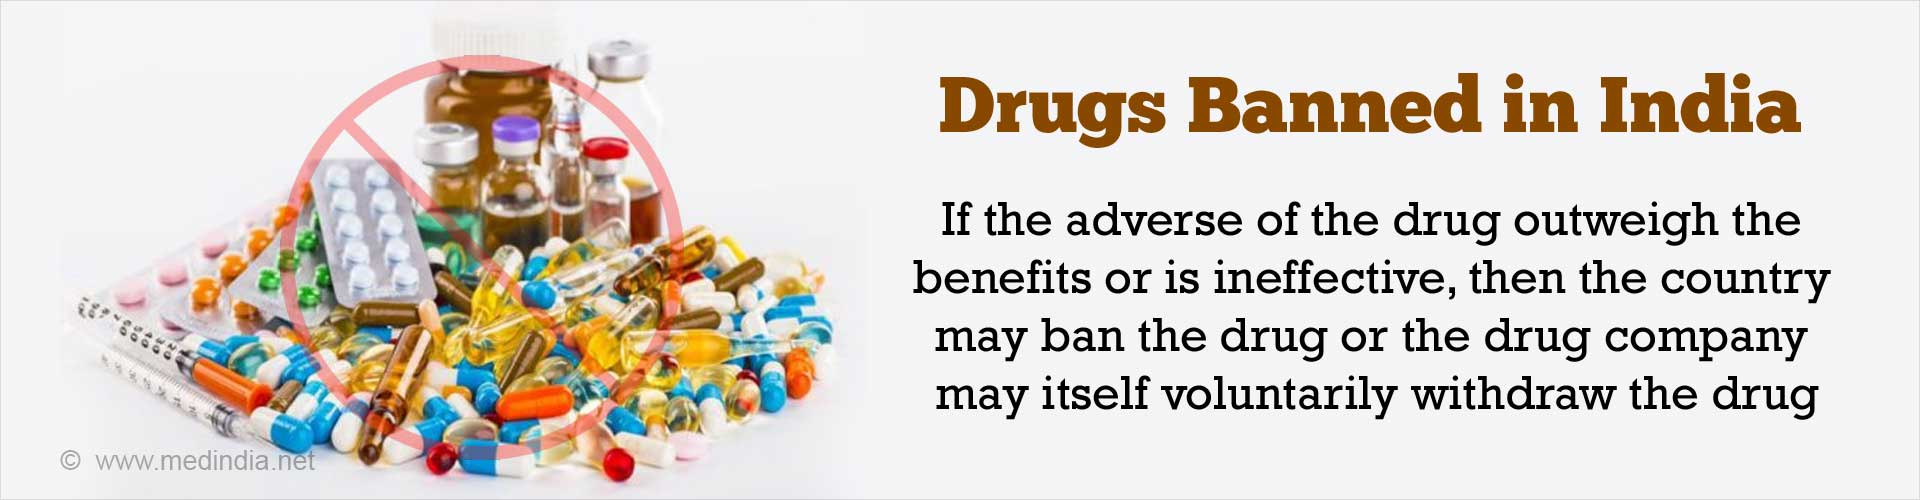 Banned Drugs / Drugs Banned in India / List of Banned Drugs